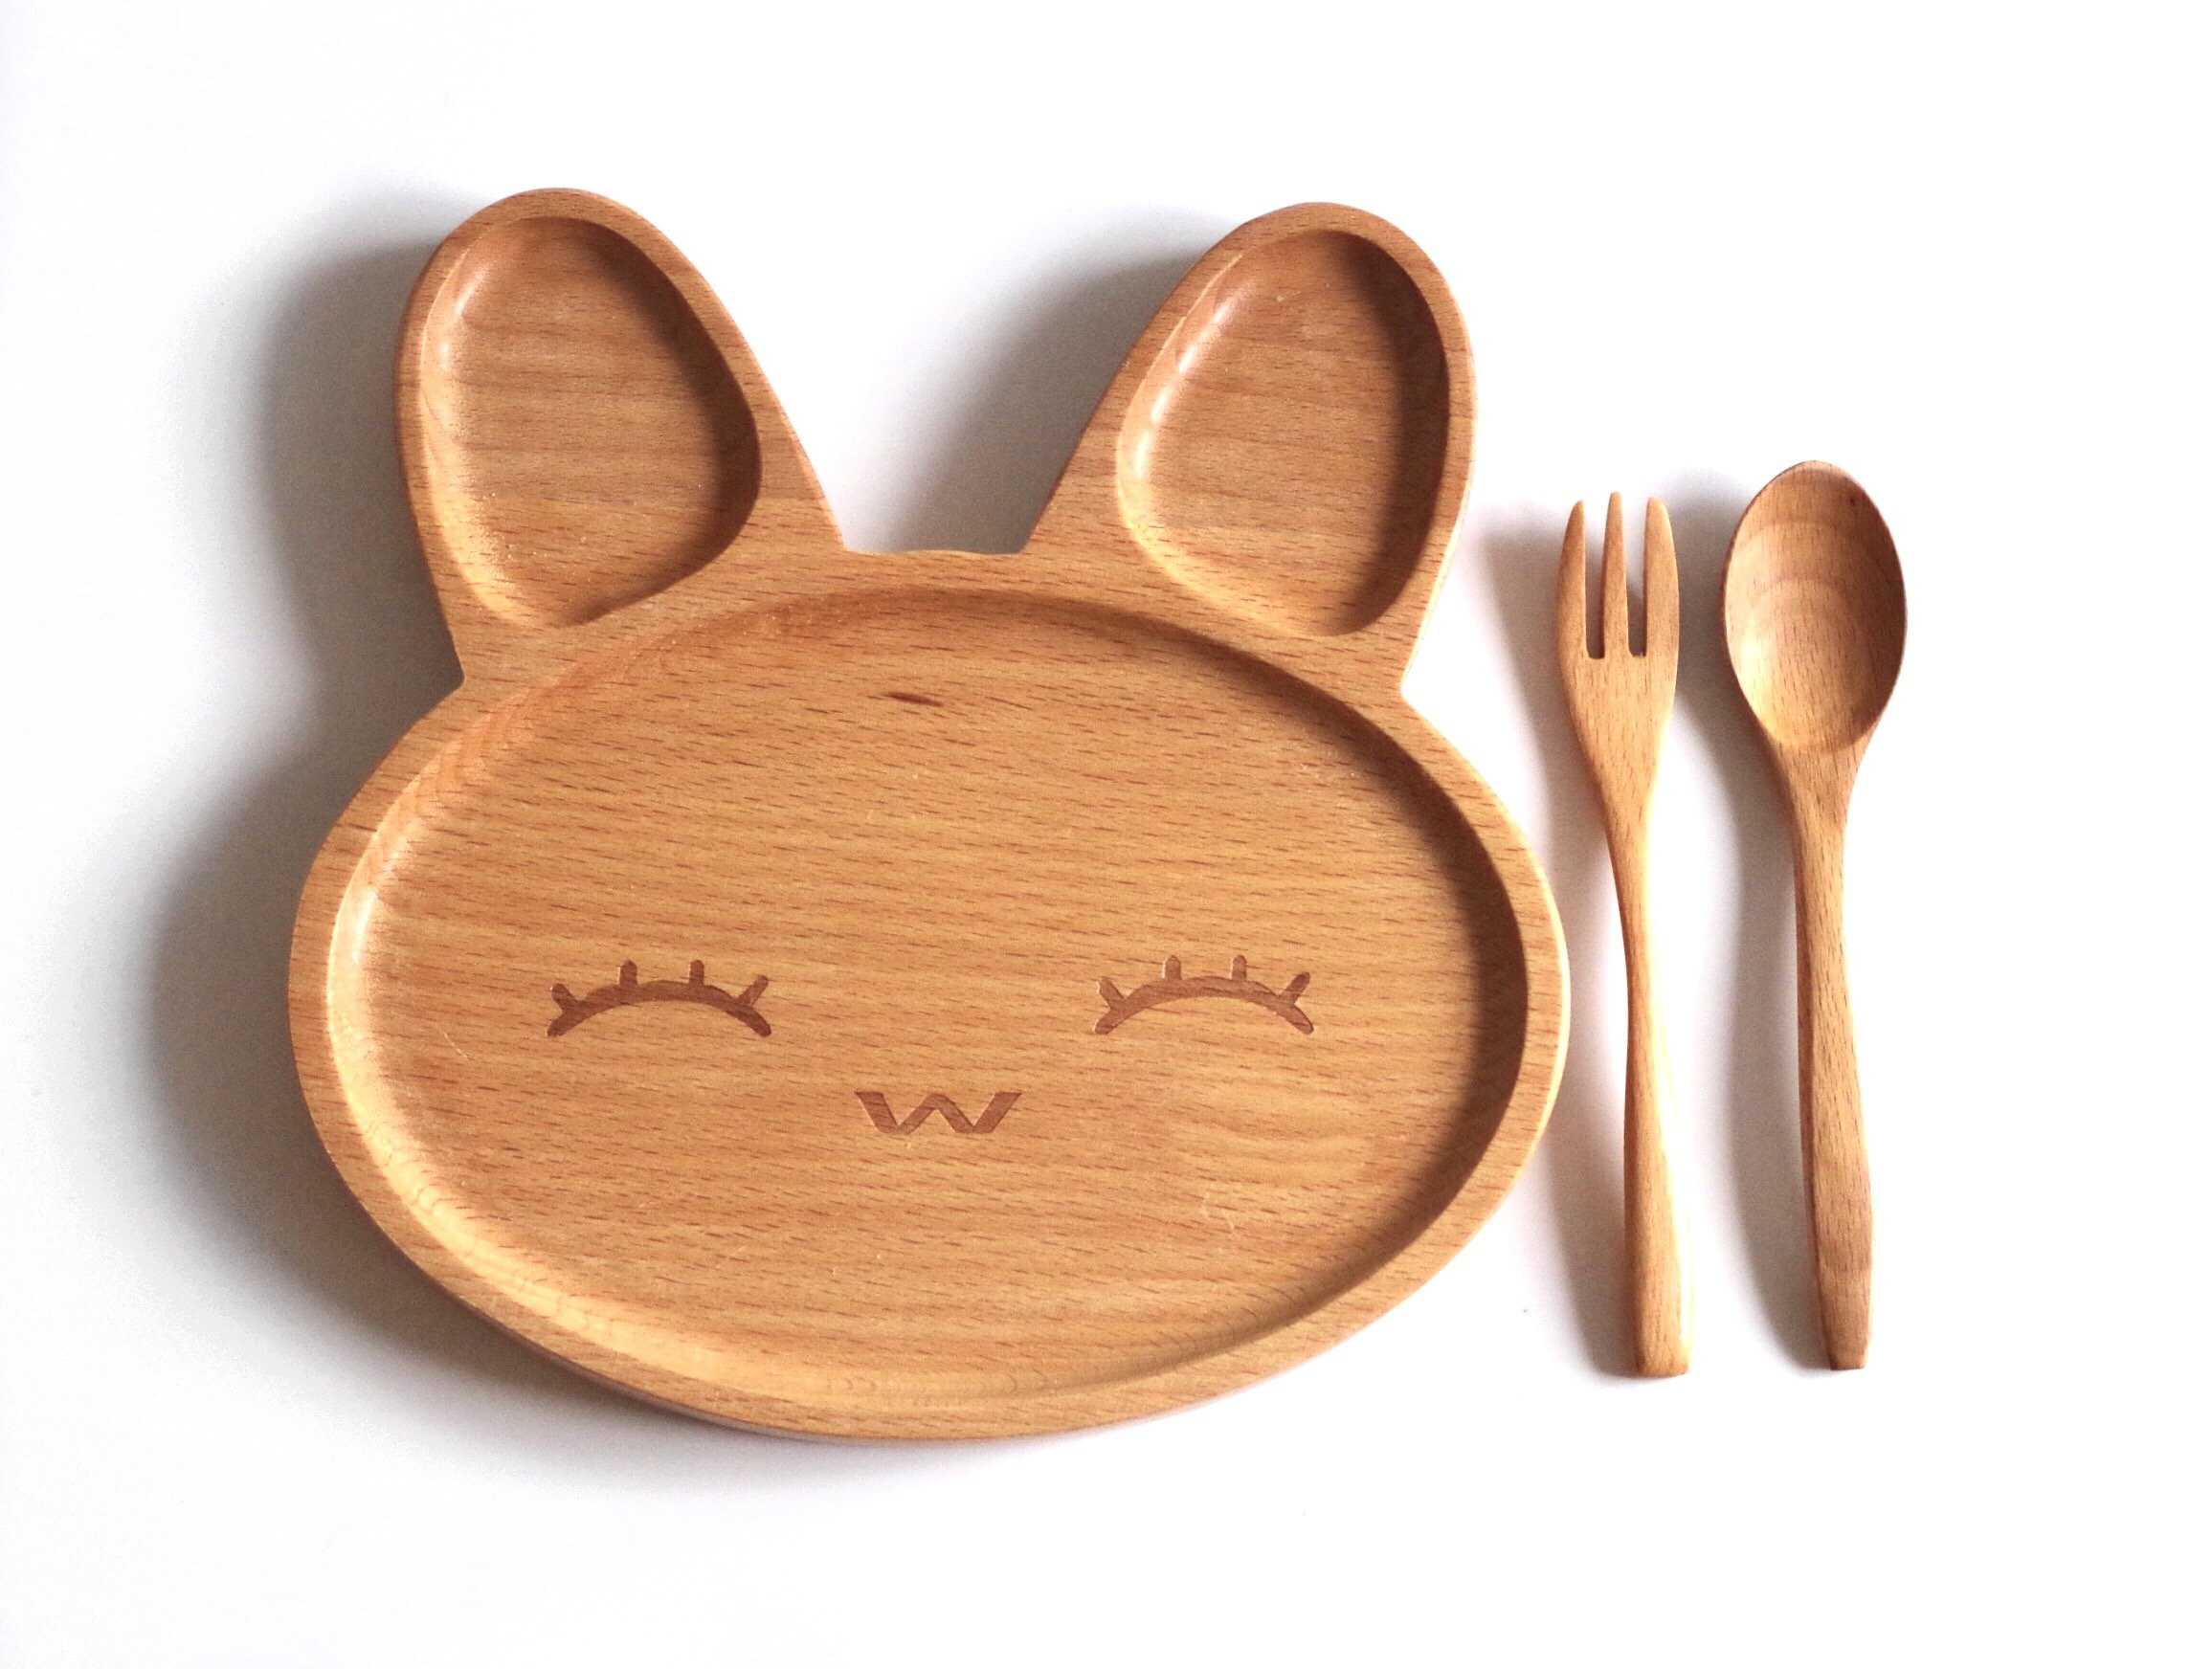 Naife - Cute wooden dish plate for kids and children, Wooden baby bowl, Ideal for children breakfast serving platter.Set 3pcs Includes Plate, Spoon and Fork.